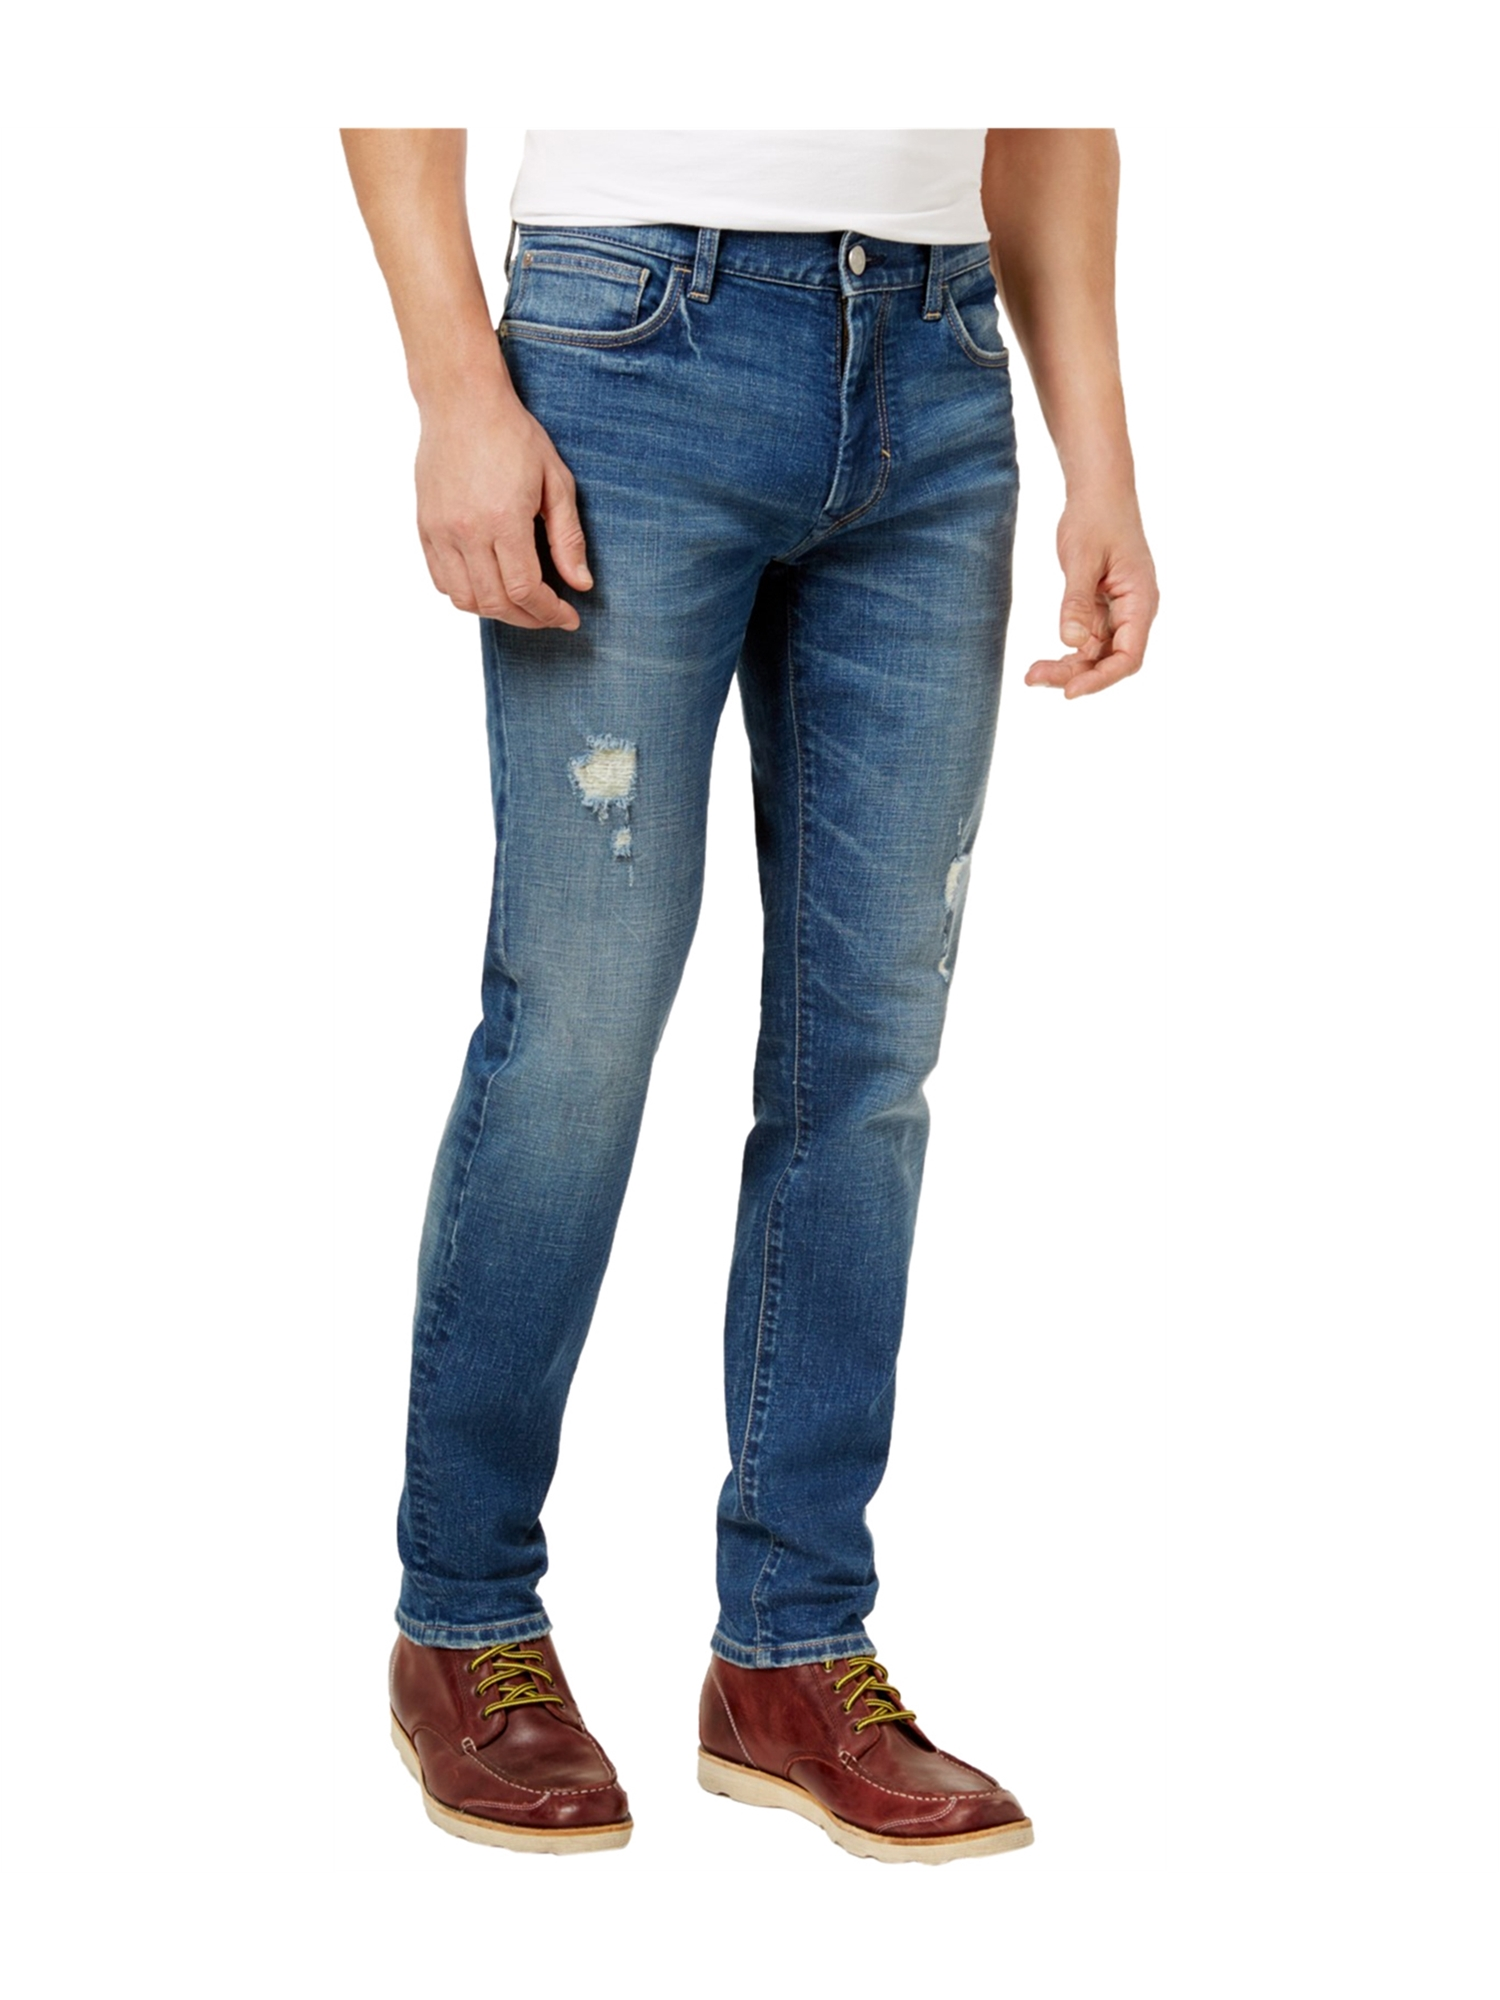 fdd4cf36c Tommy Hilfiger Mens Distressed Slim Fit Jeans 479 36x32 | Walmart Canada